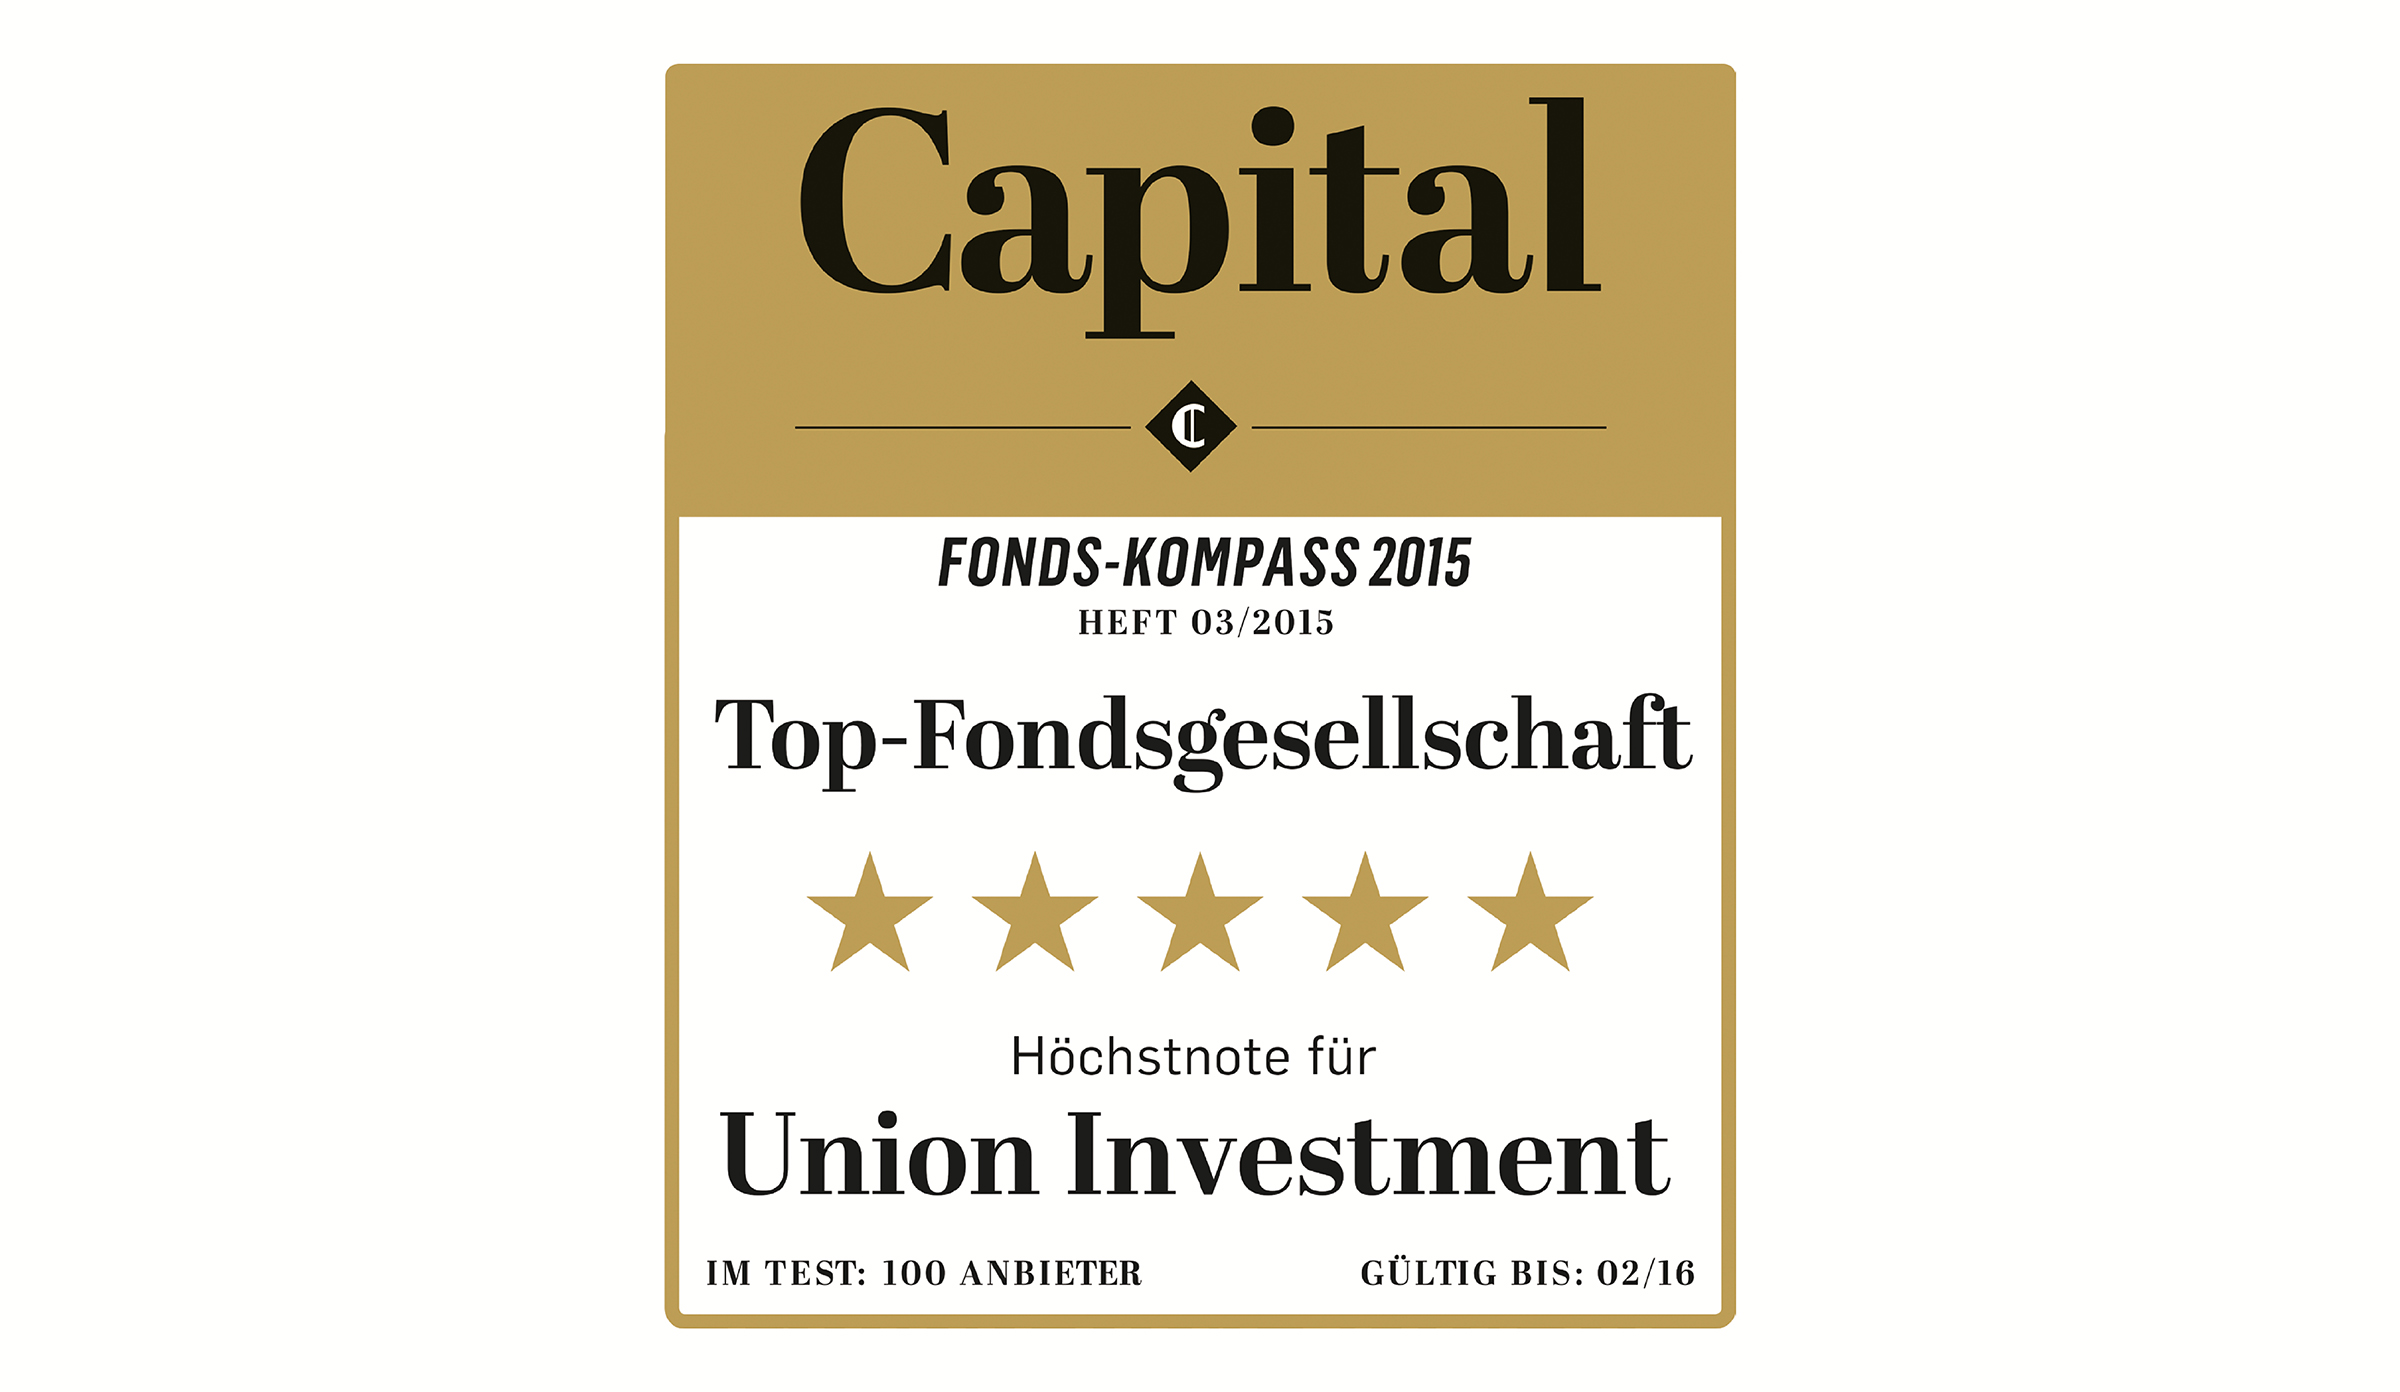 Capital 5 Sterne